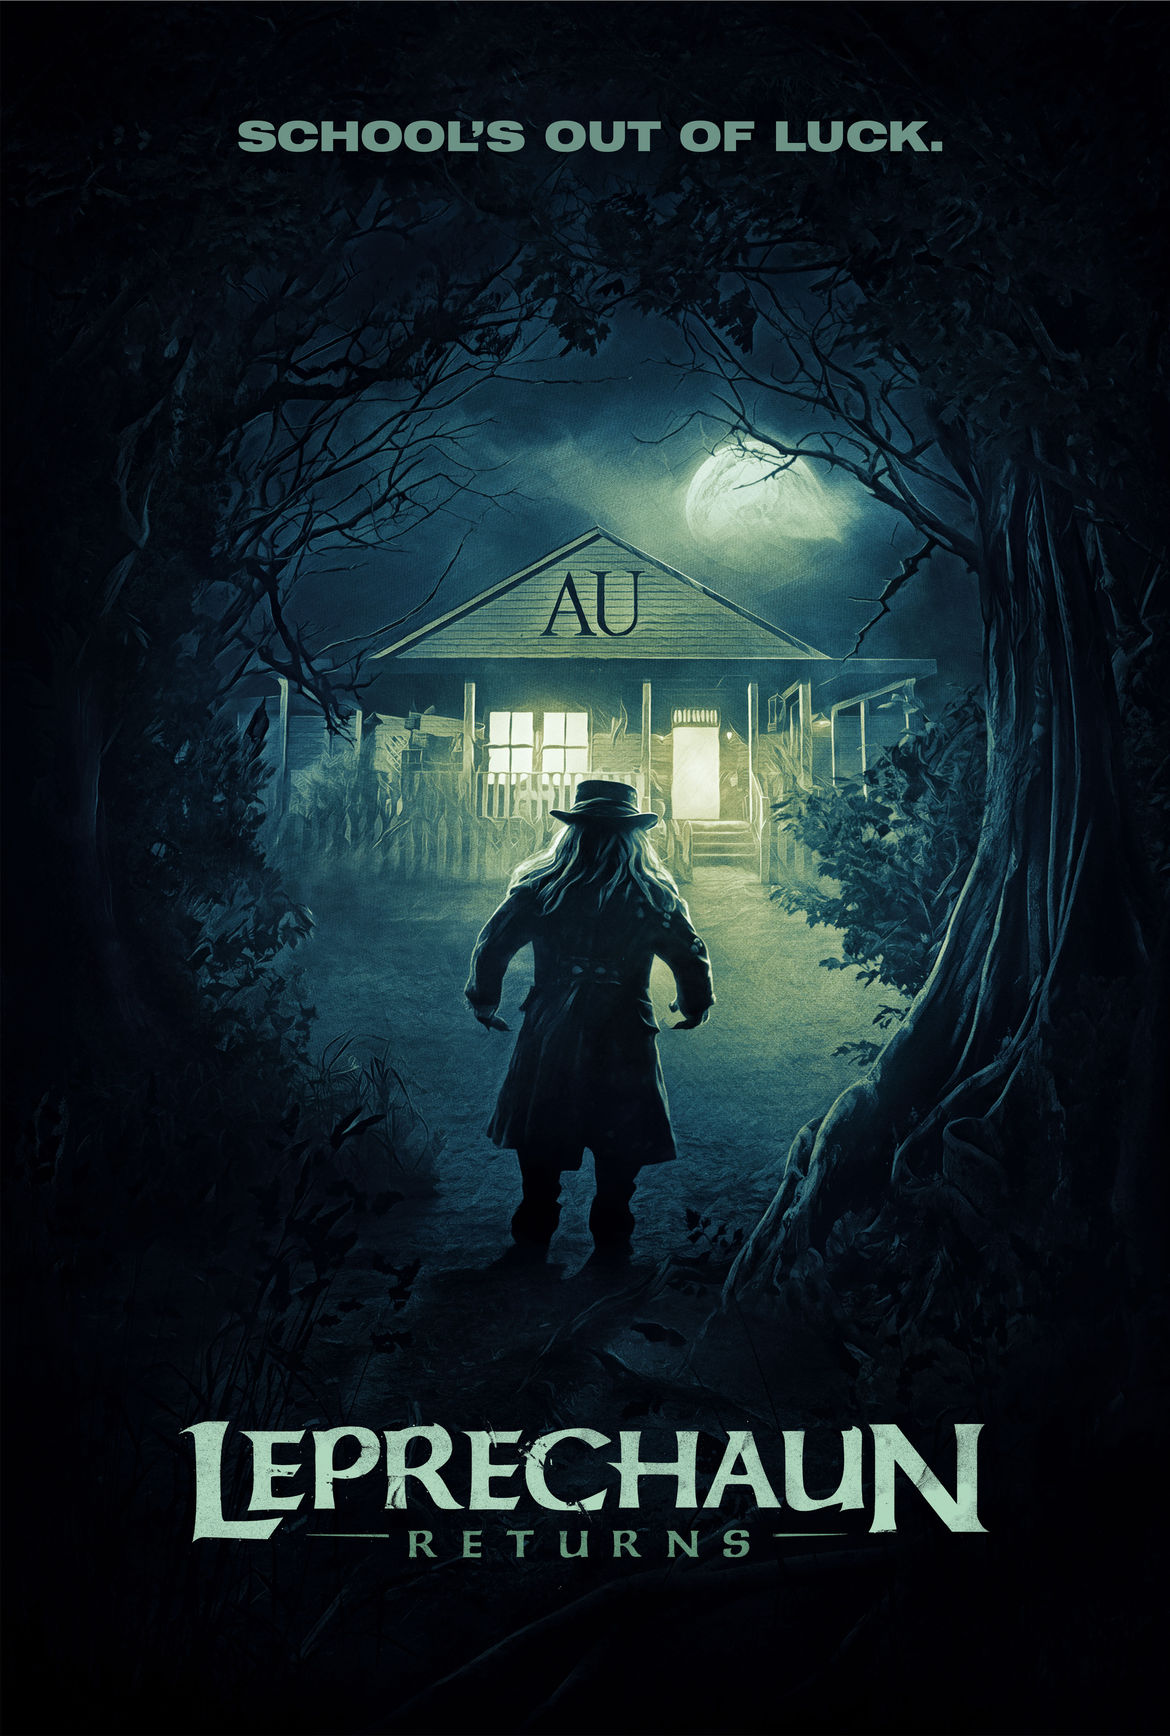 Leprechaun Returns teaser poster